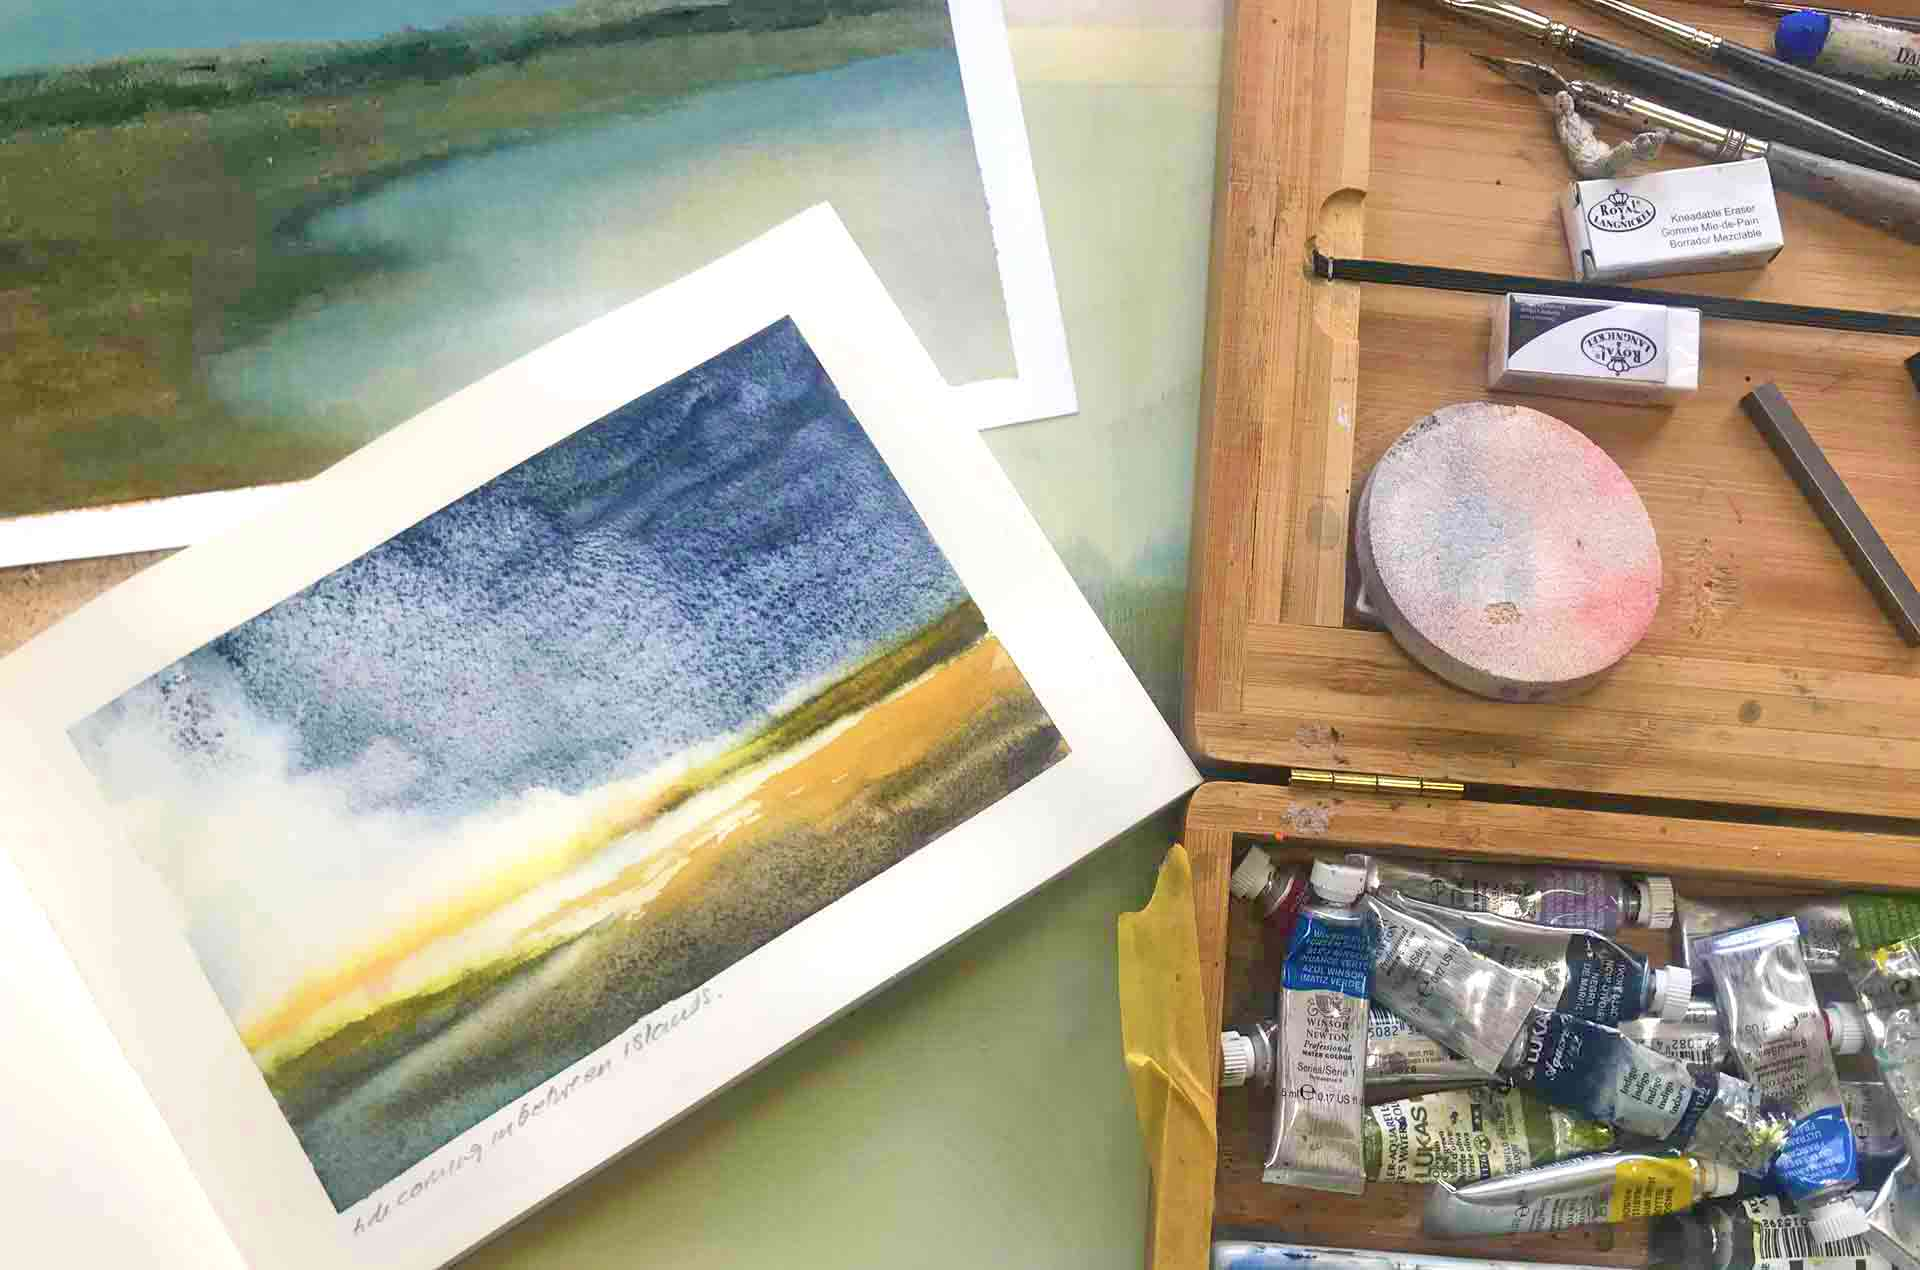 Victoria Orr Ewing's Sketchbooks For Her Landscape Paintings